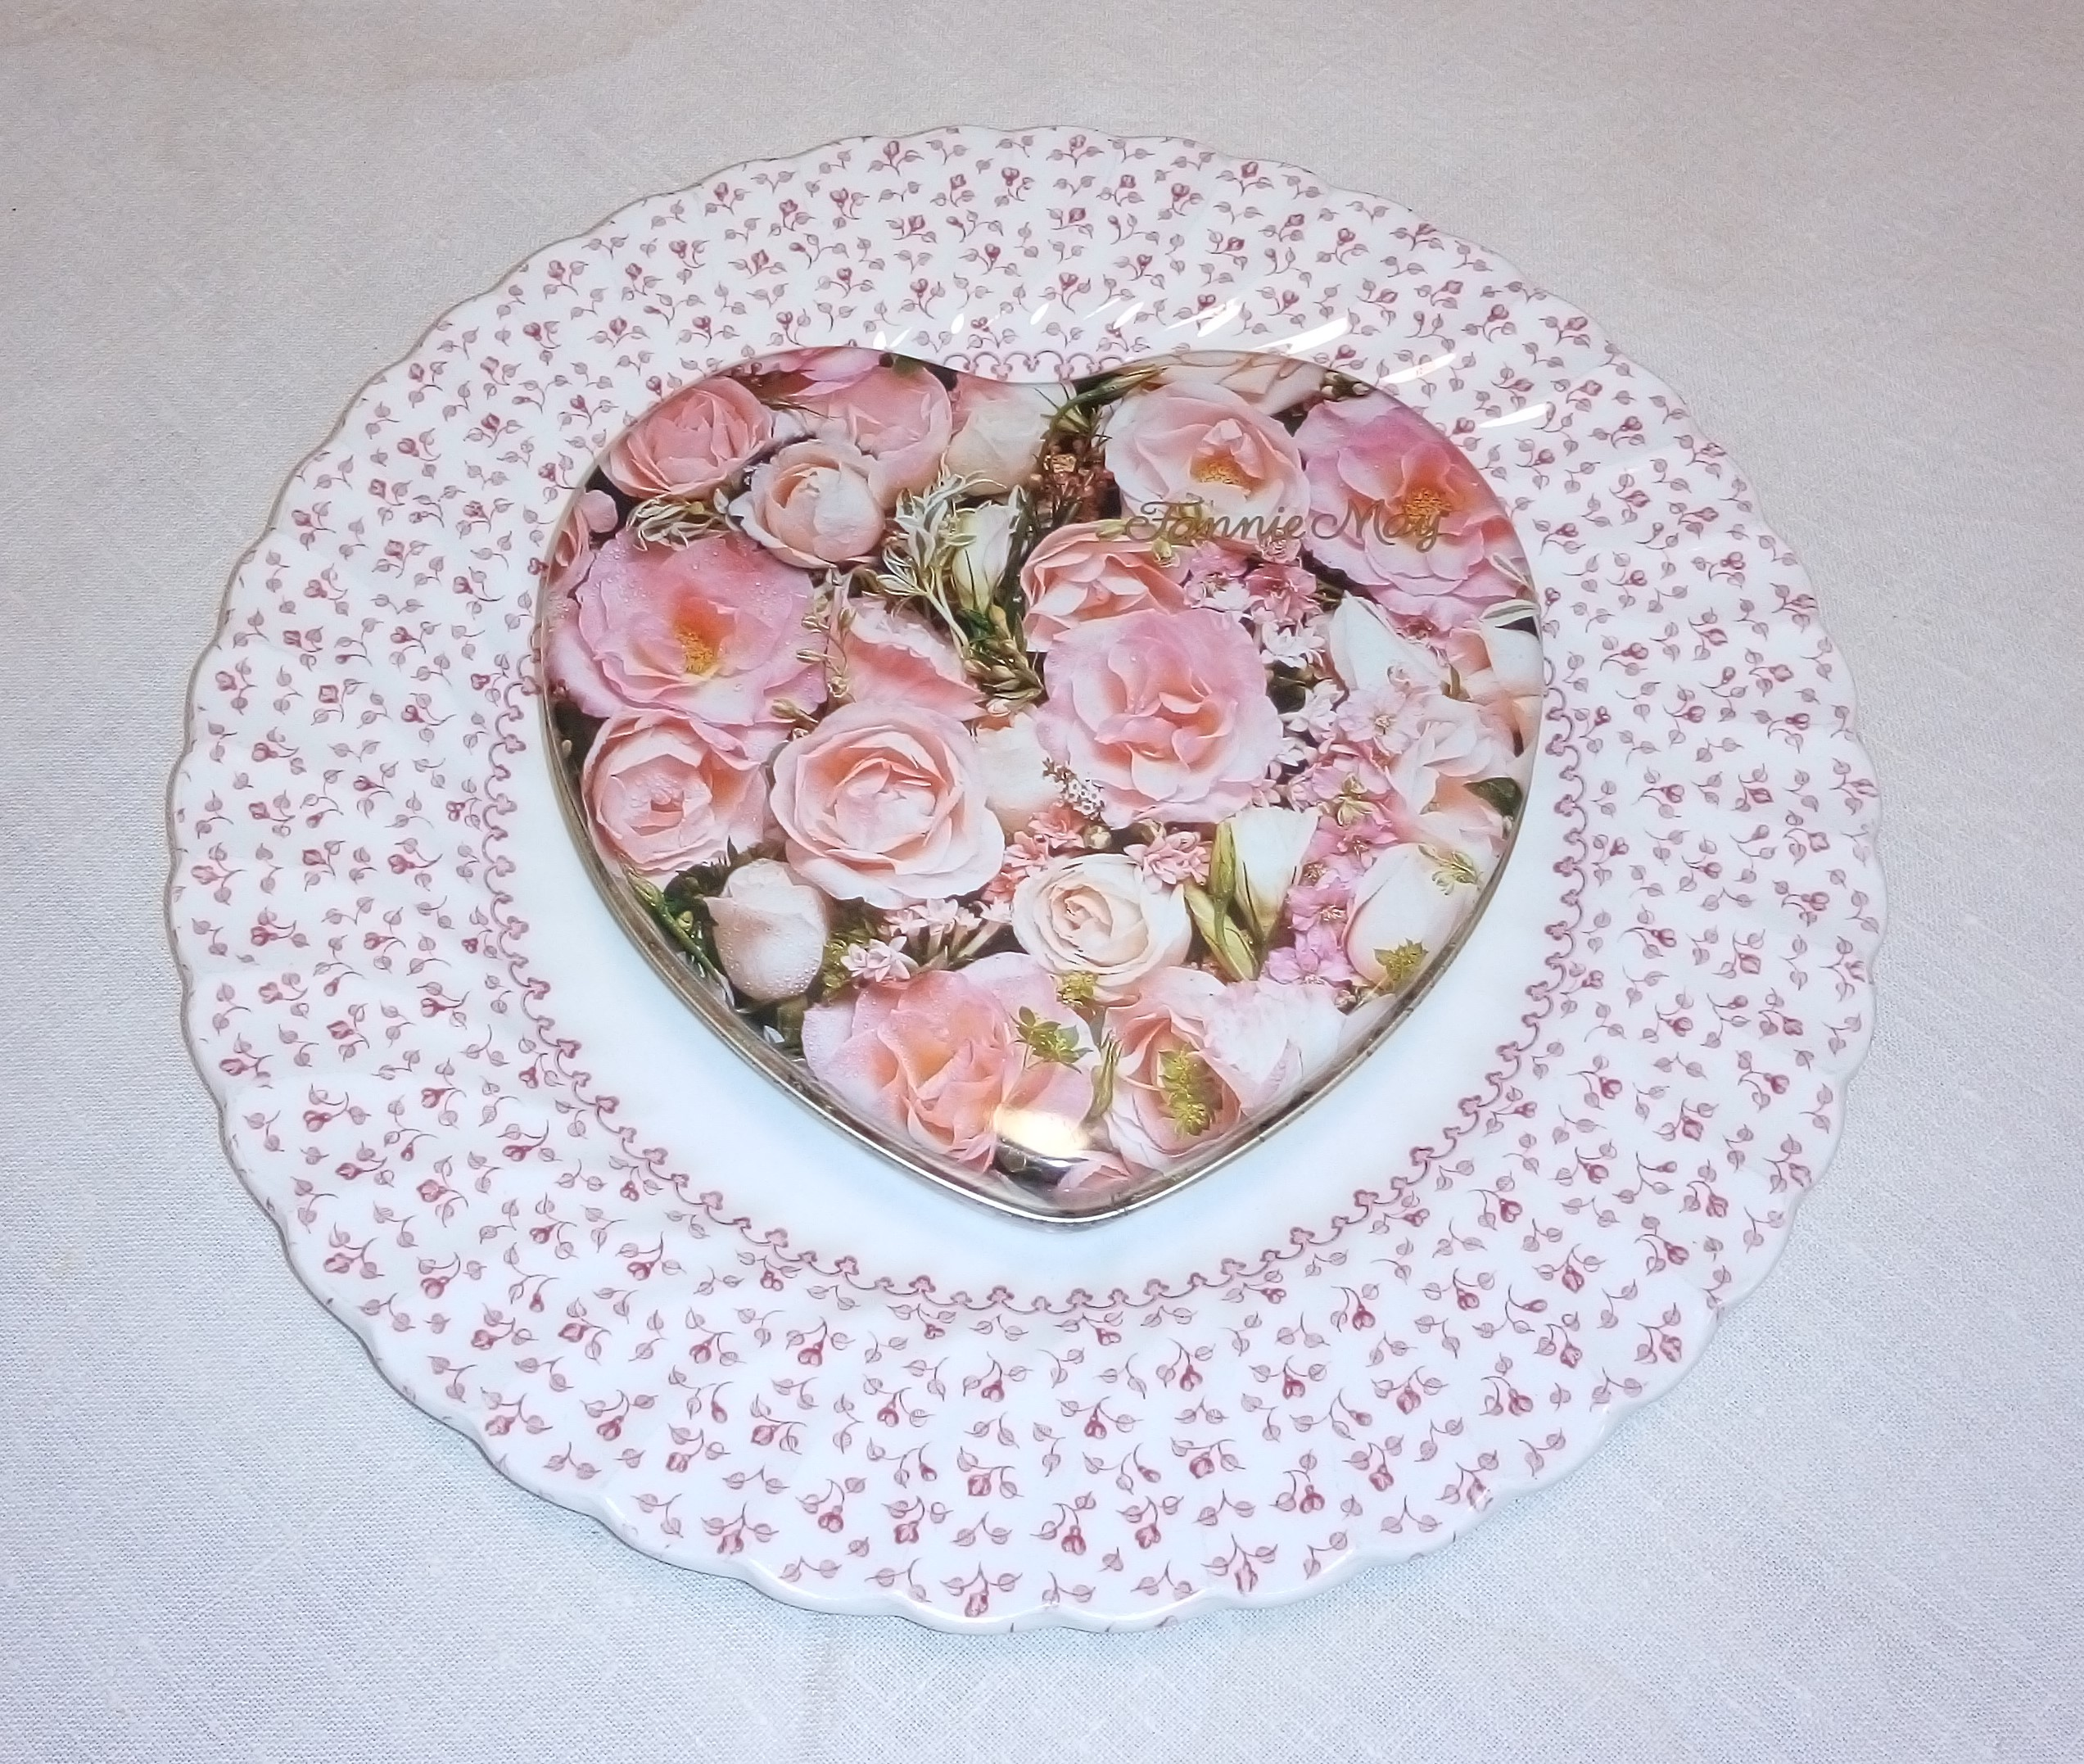 Pink plates and Valendtine's Day